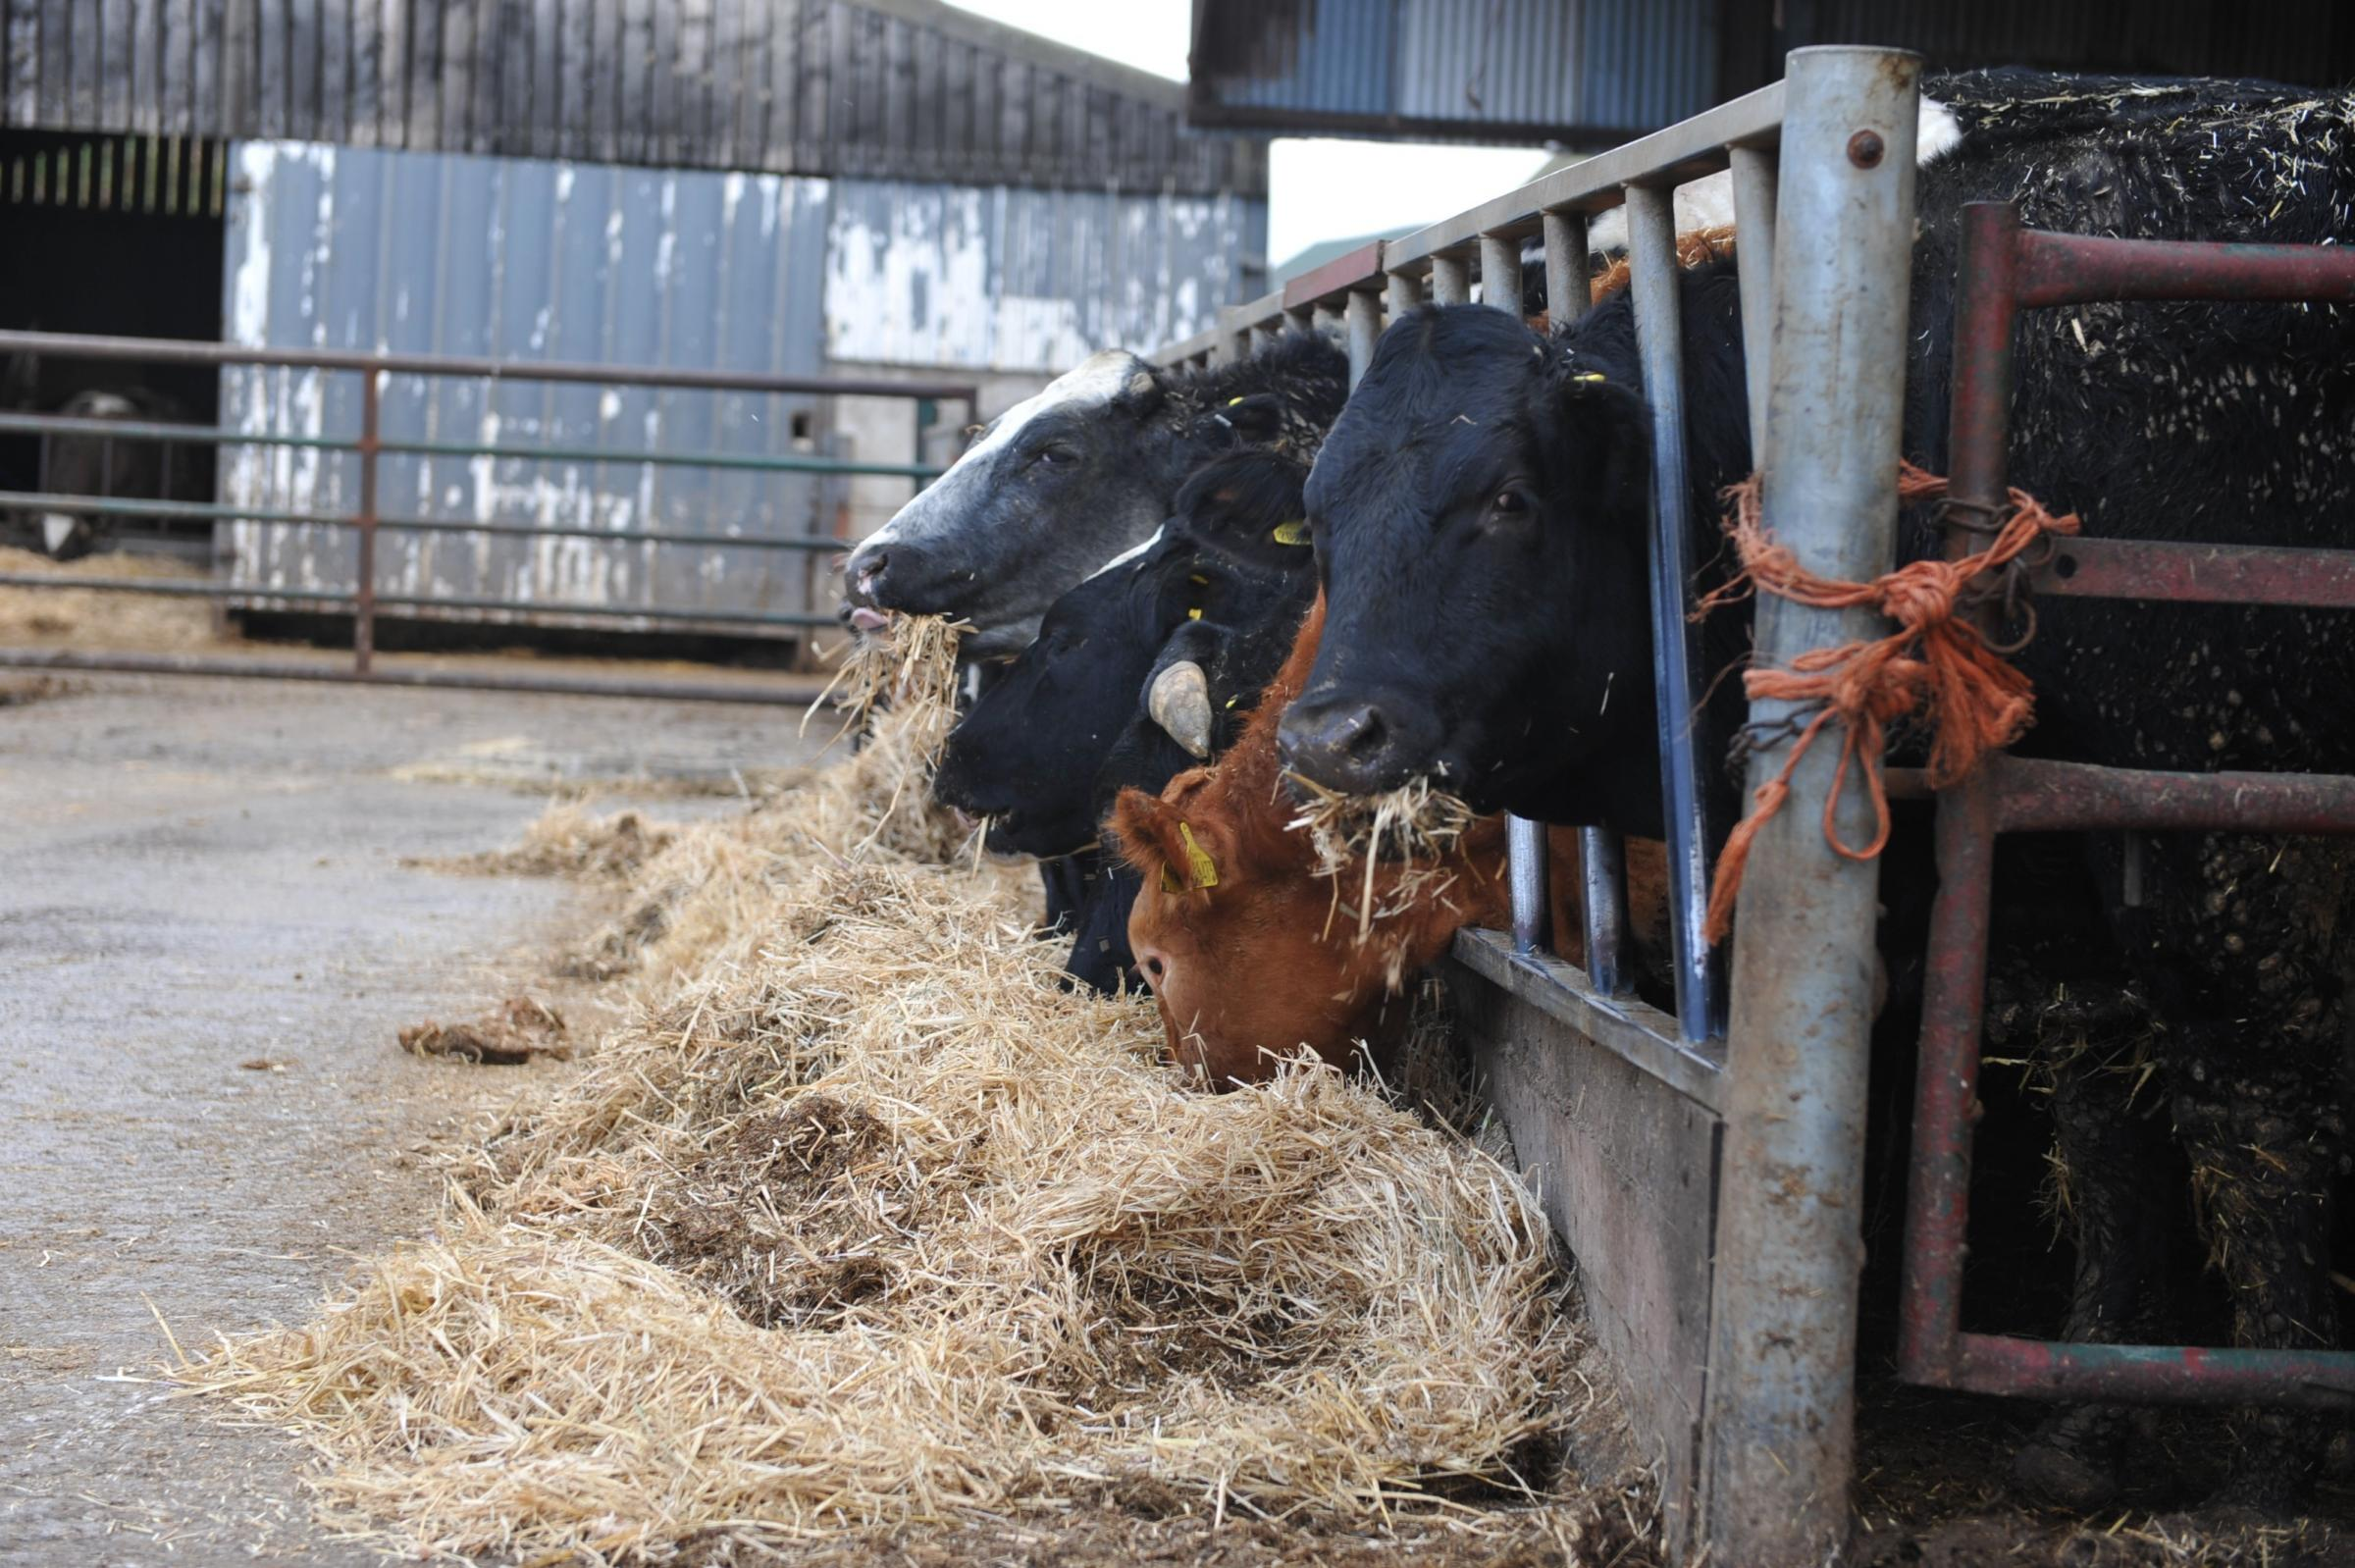 Record prices for straw will push livestock bedding and feed costs this winter PICTURE: Debbie James